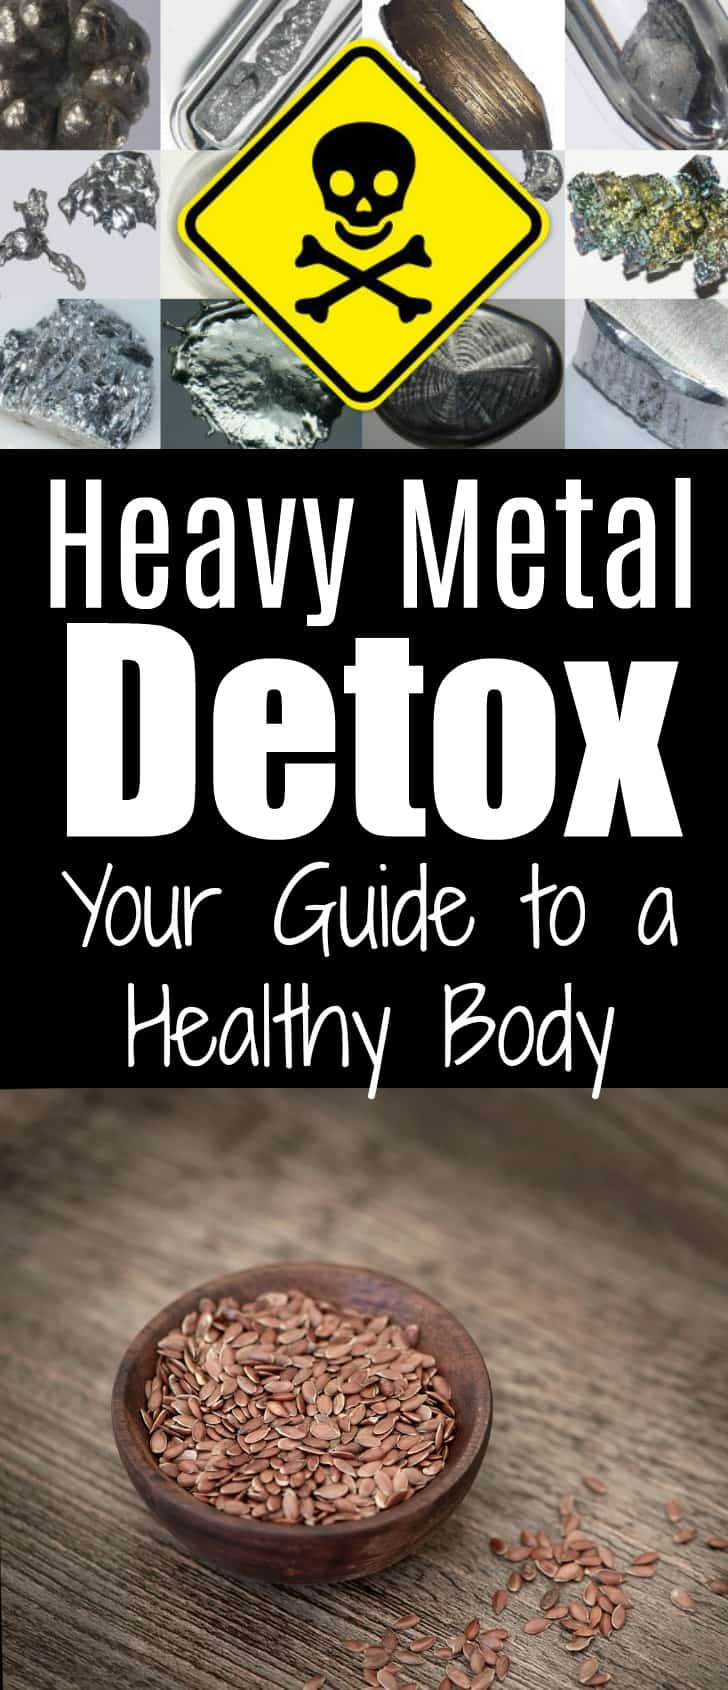 Heavy Metal Detox – Your Guide to a Healthy Body